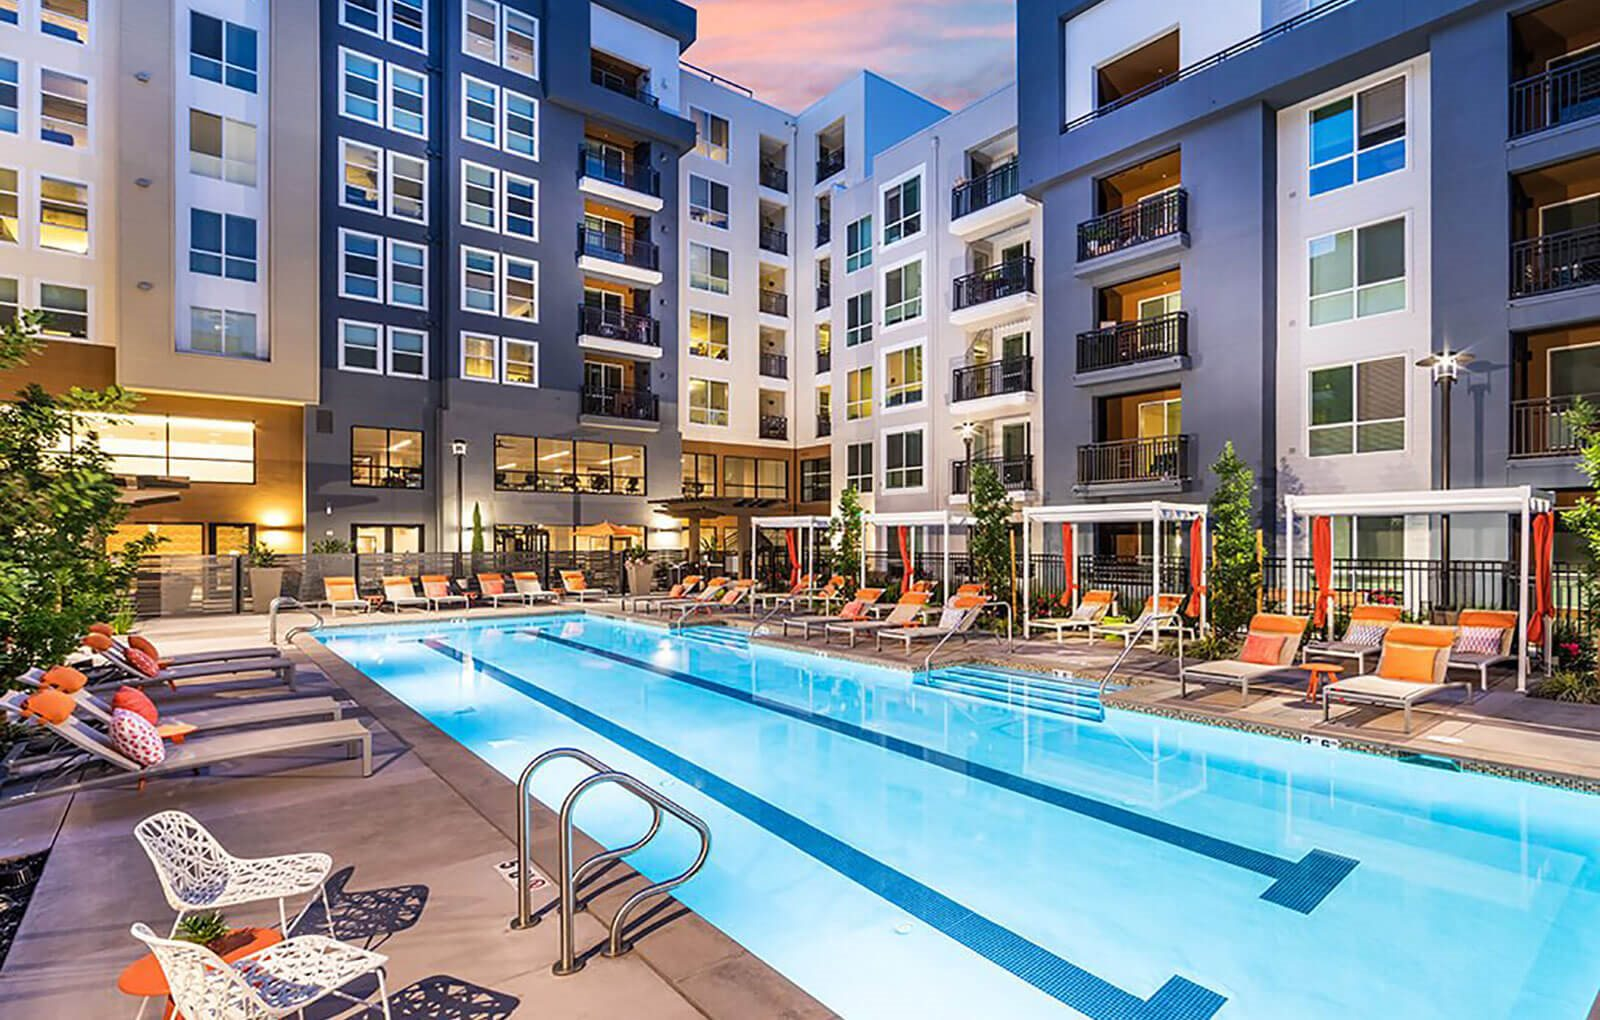 808 West Apartments Apartments For Rent In San Jose Ca